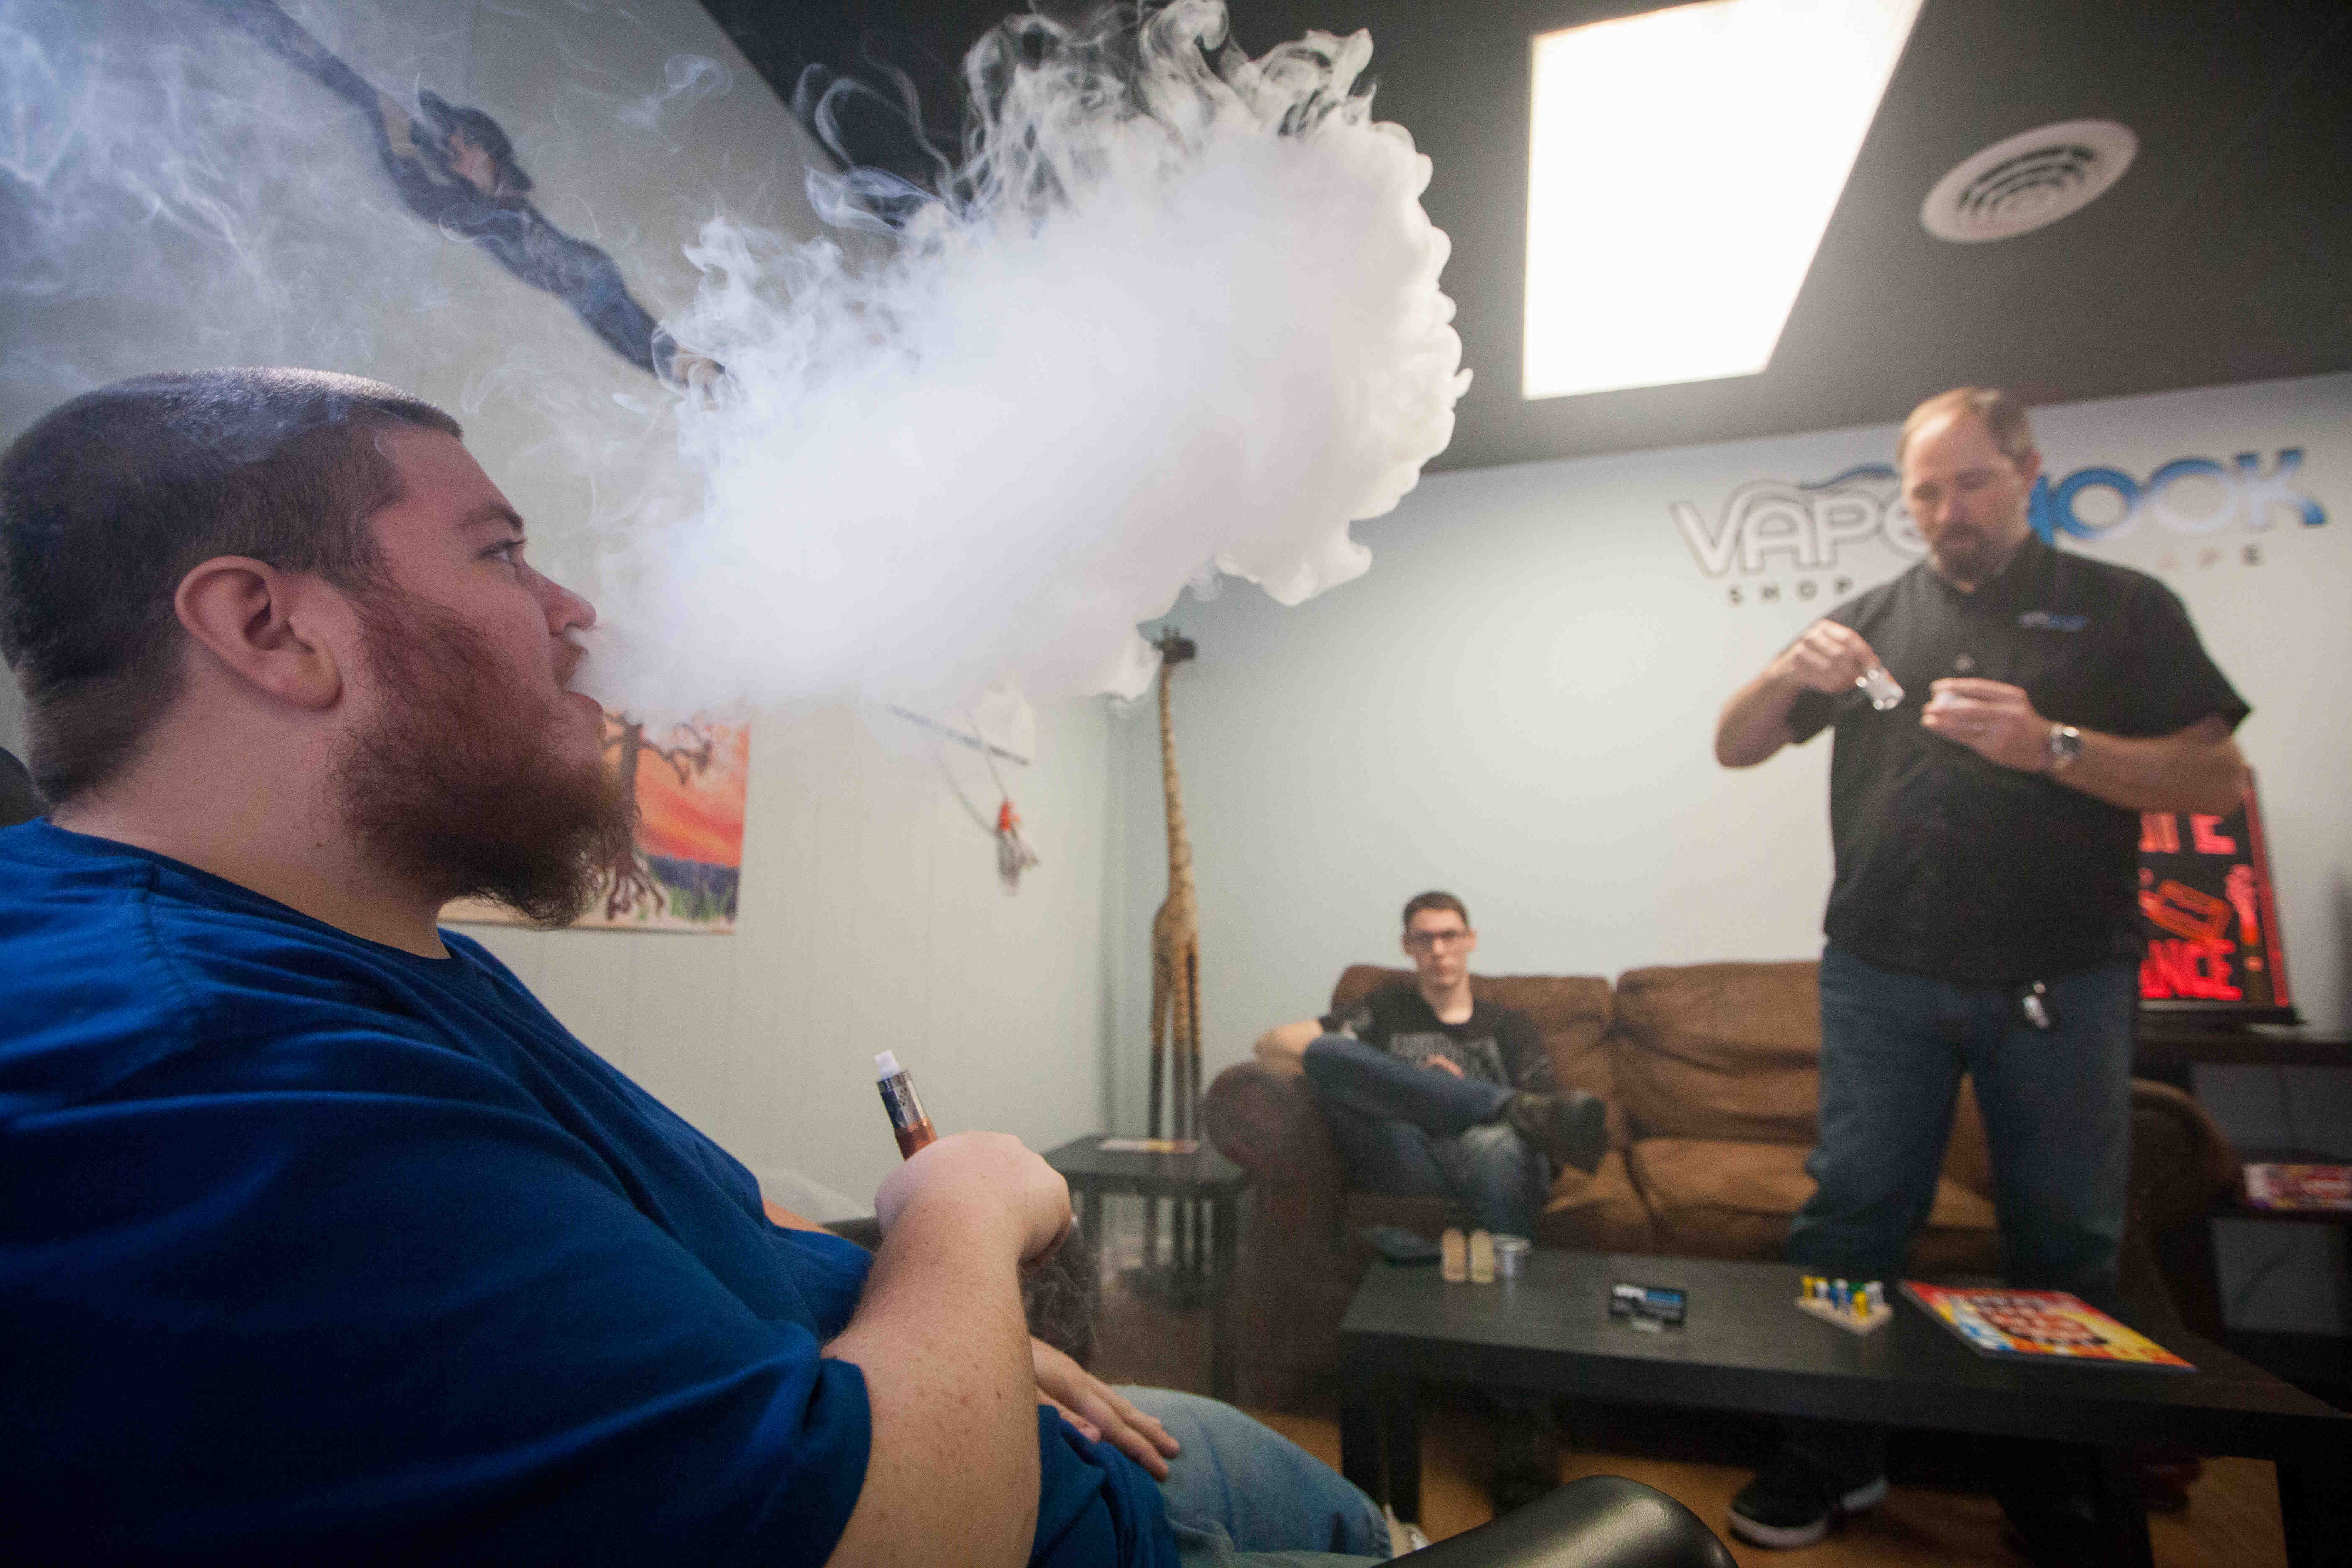 Vape shop owners, customers fight indoor ban on e cigs